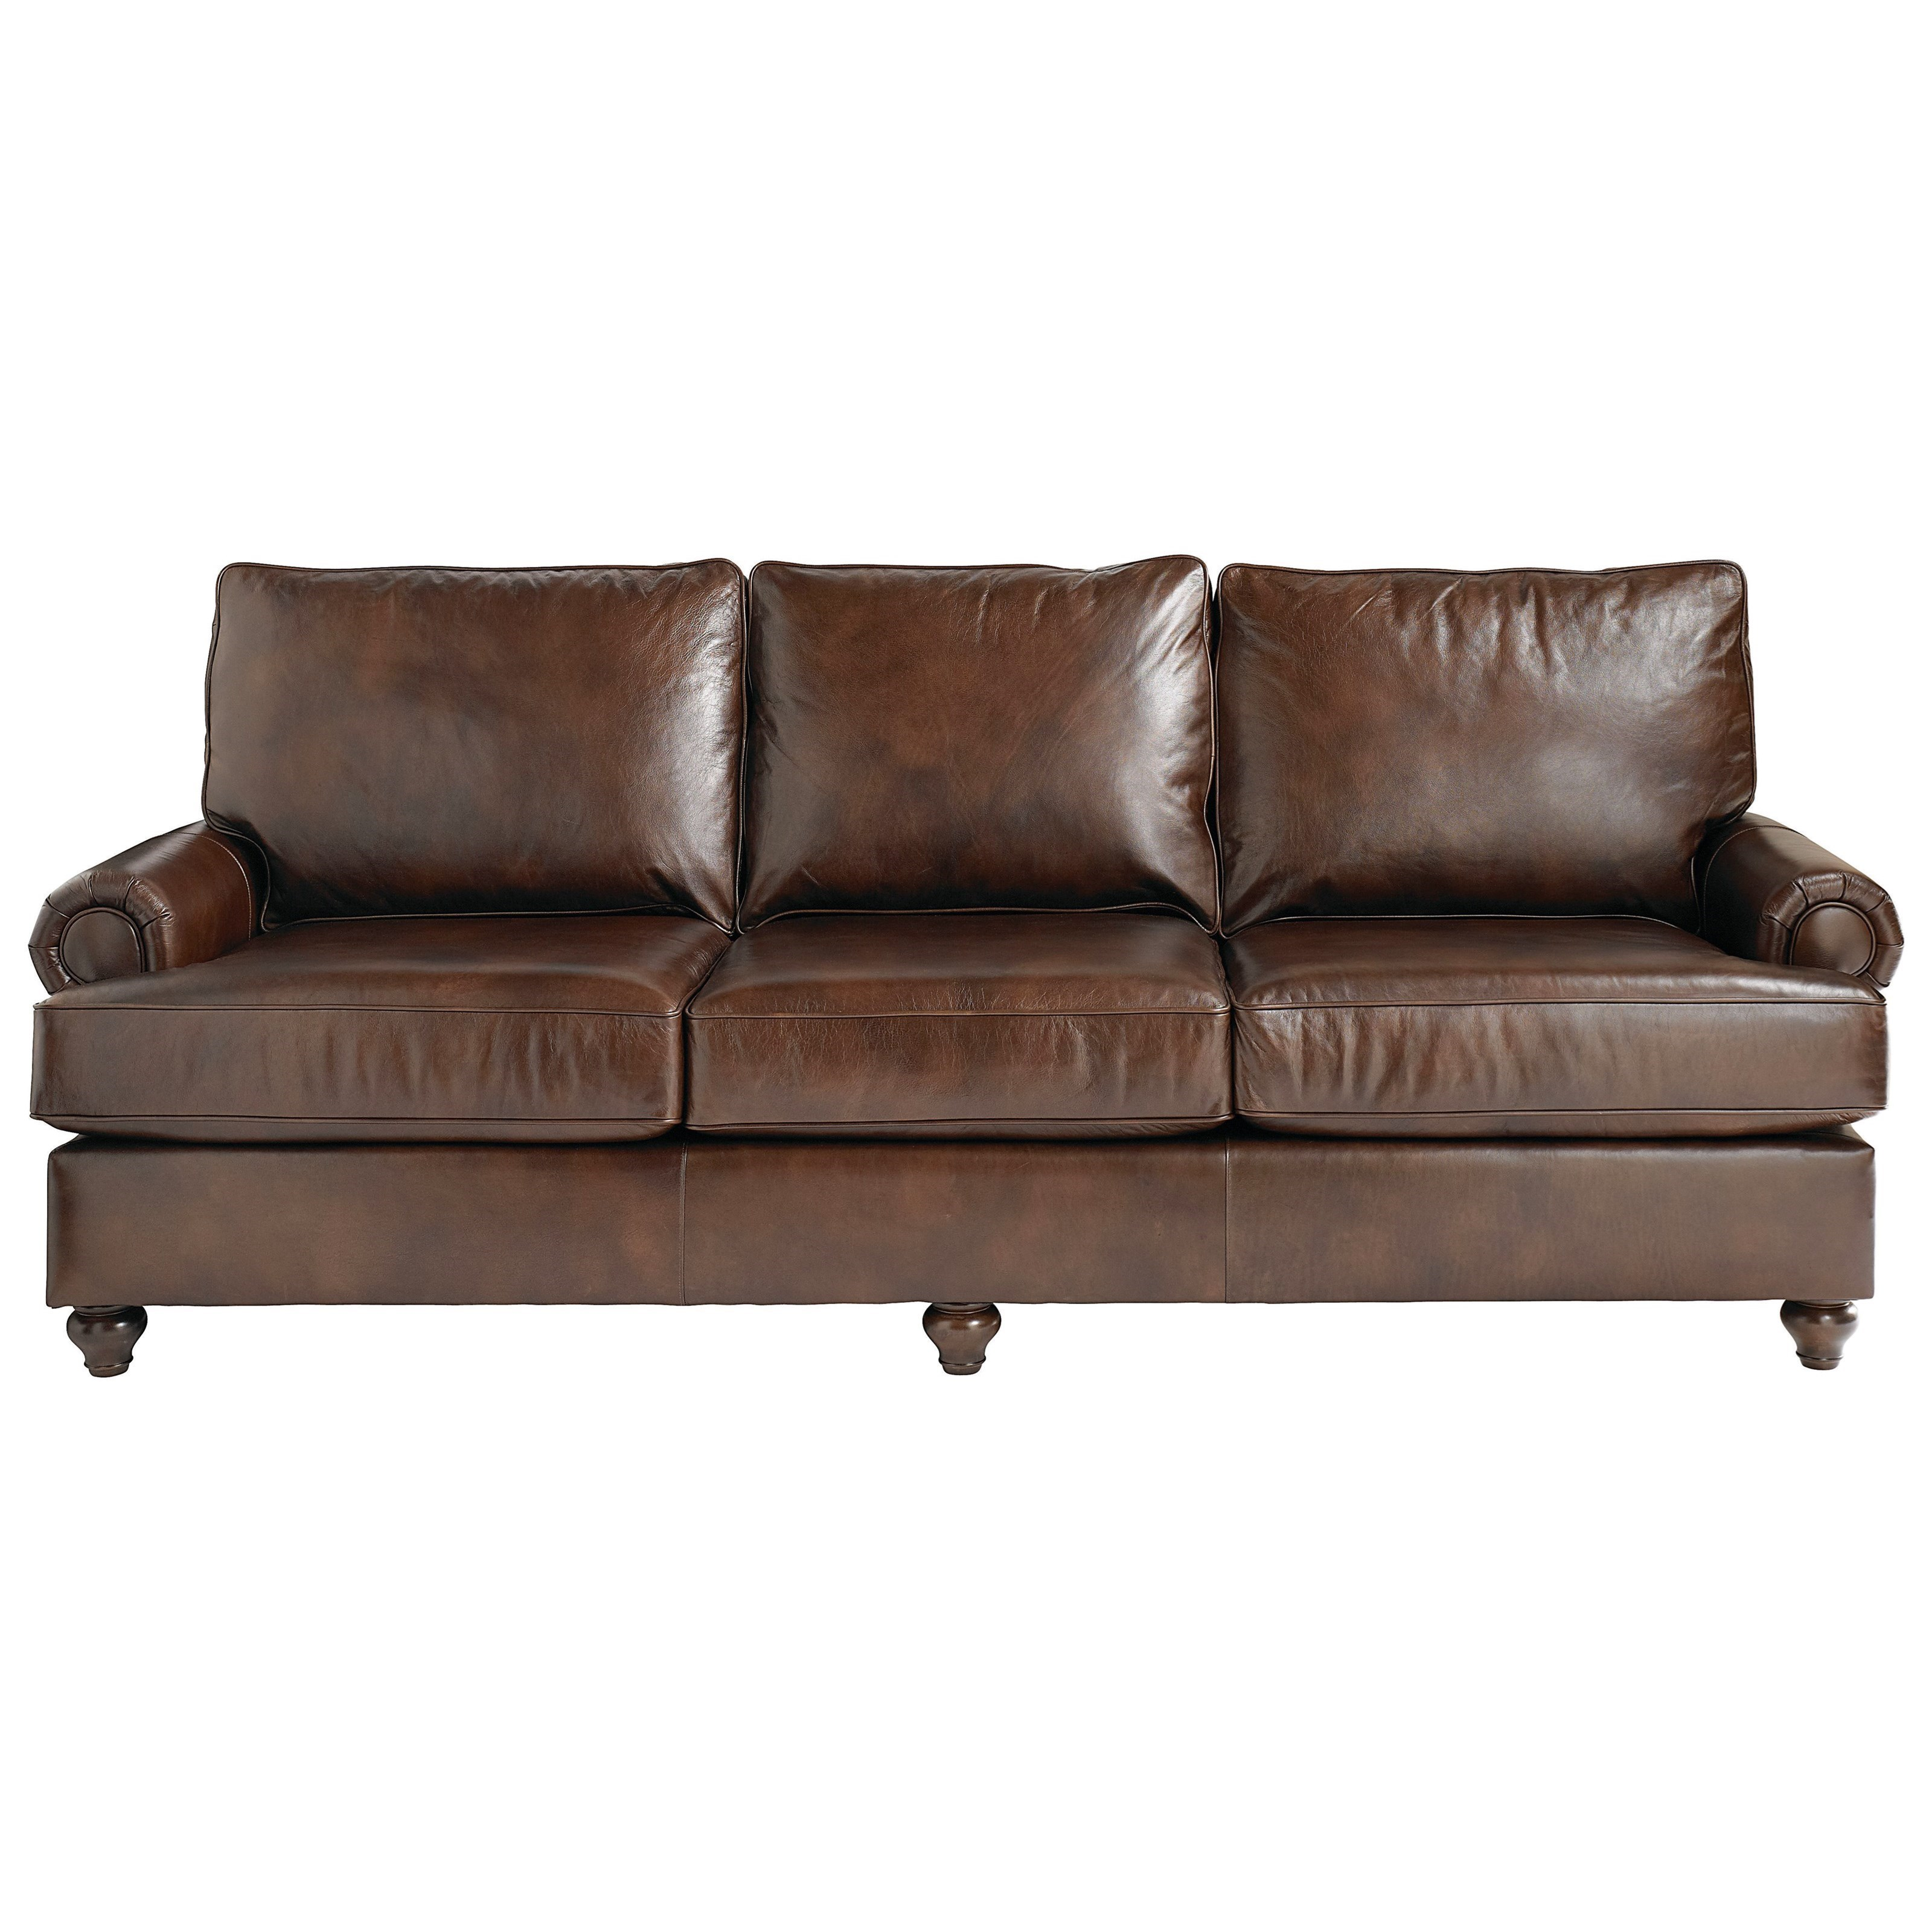 Charmant Bassett Montague Casual Sofa With Rolled Arms